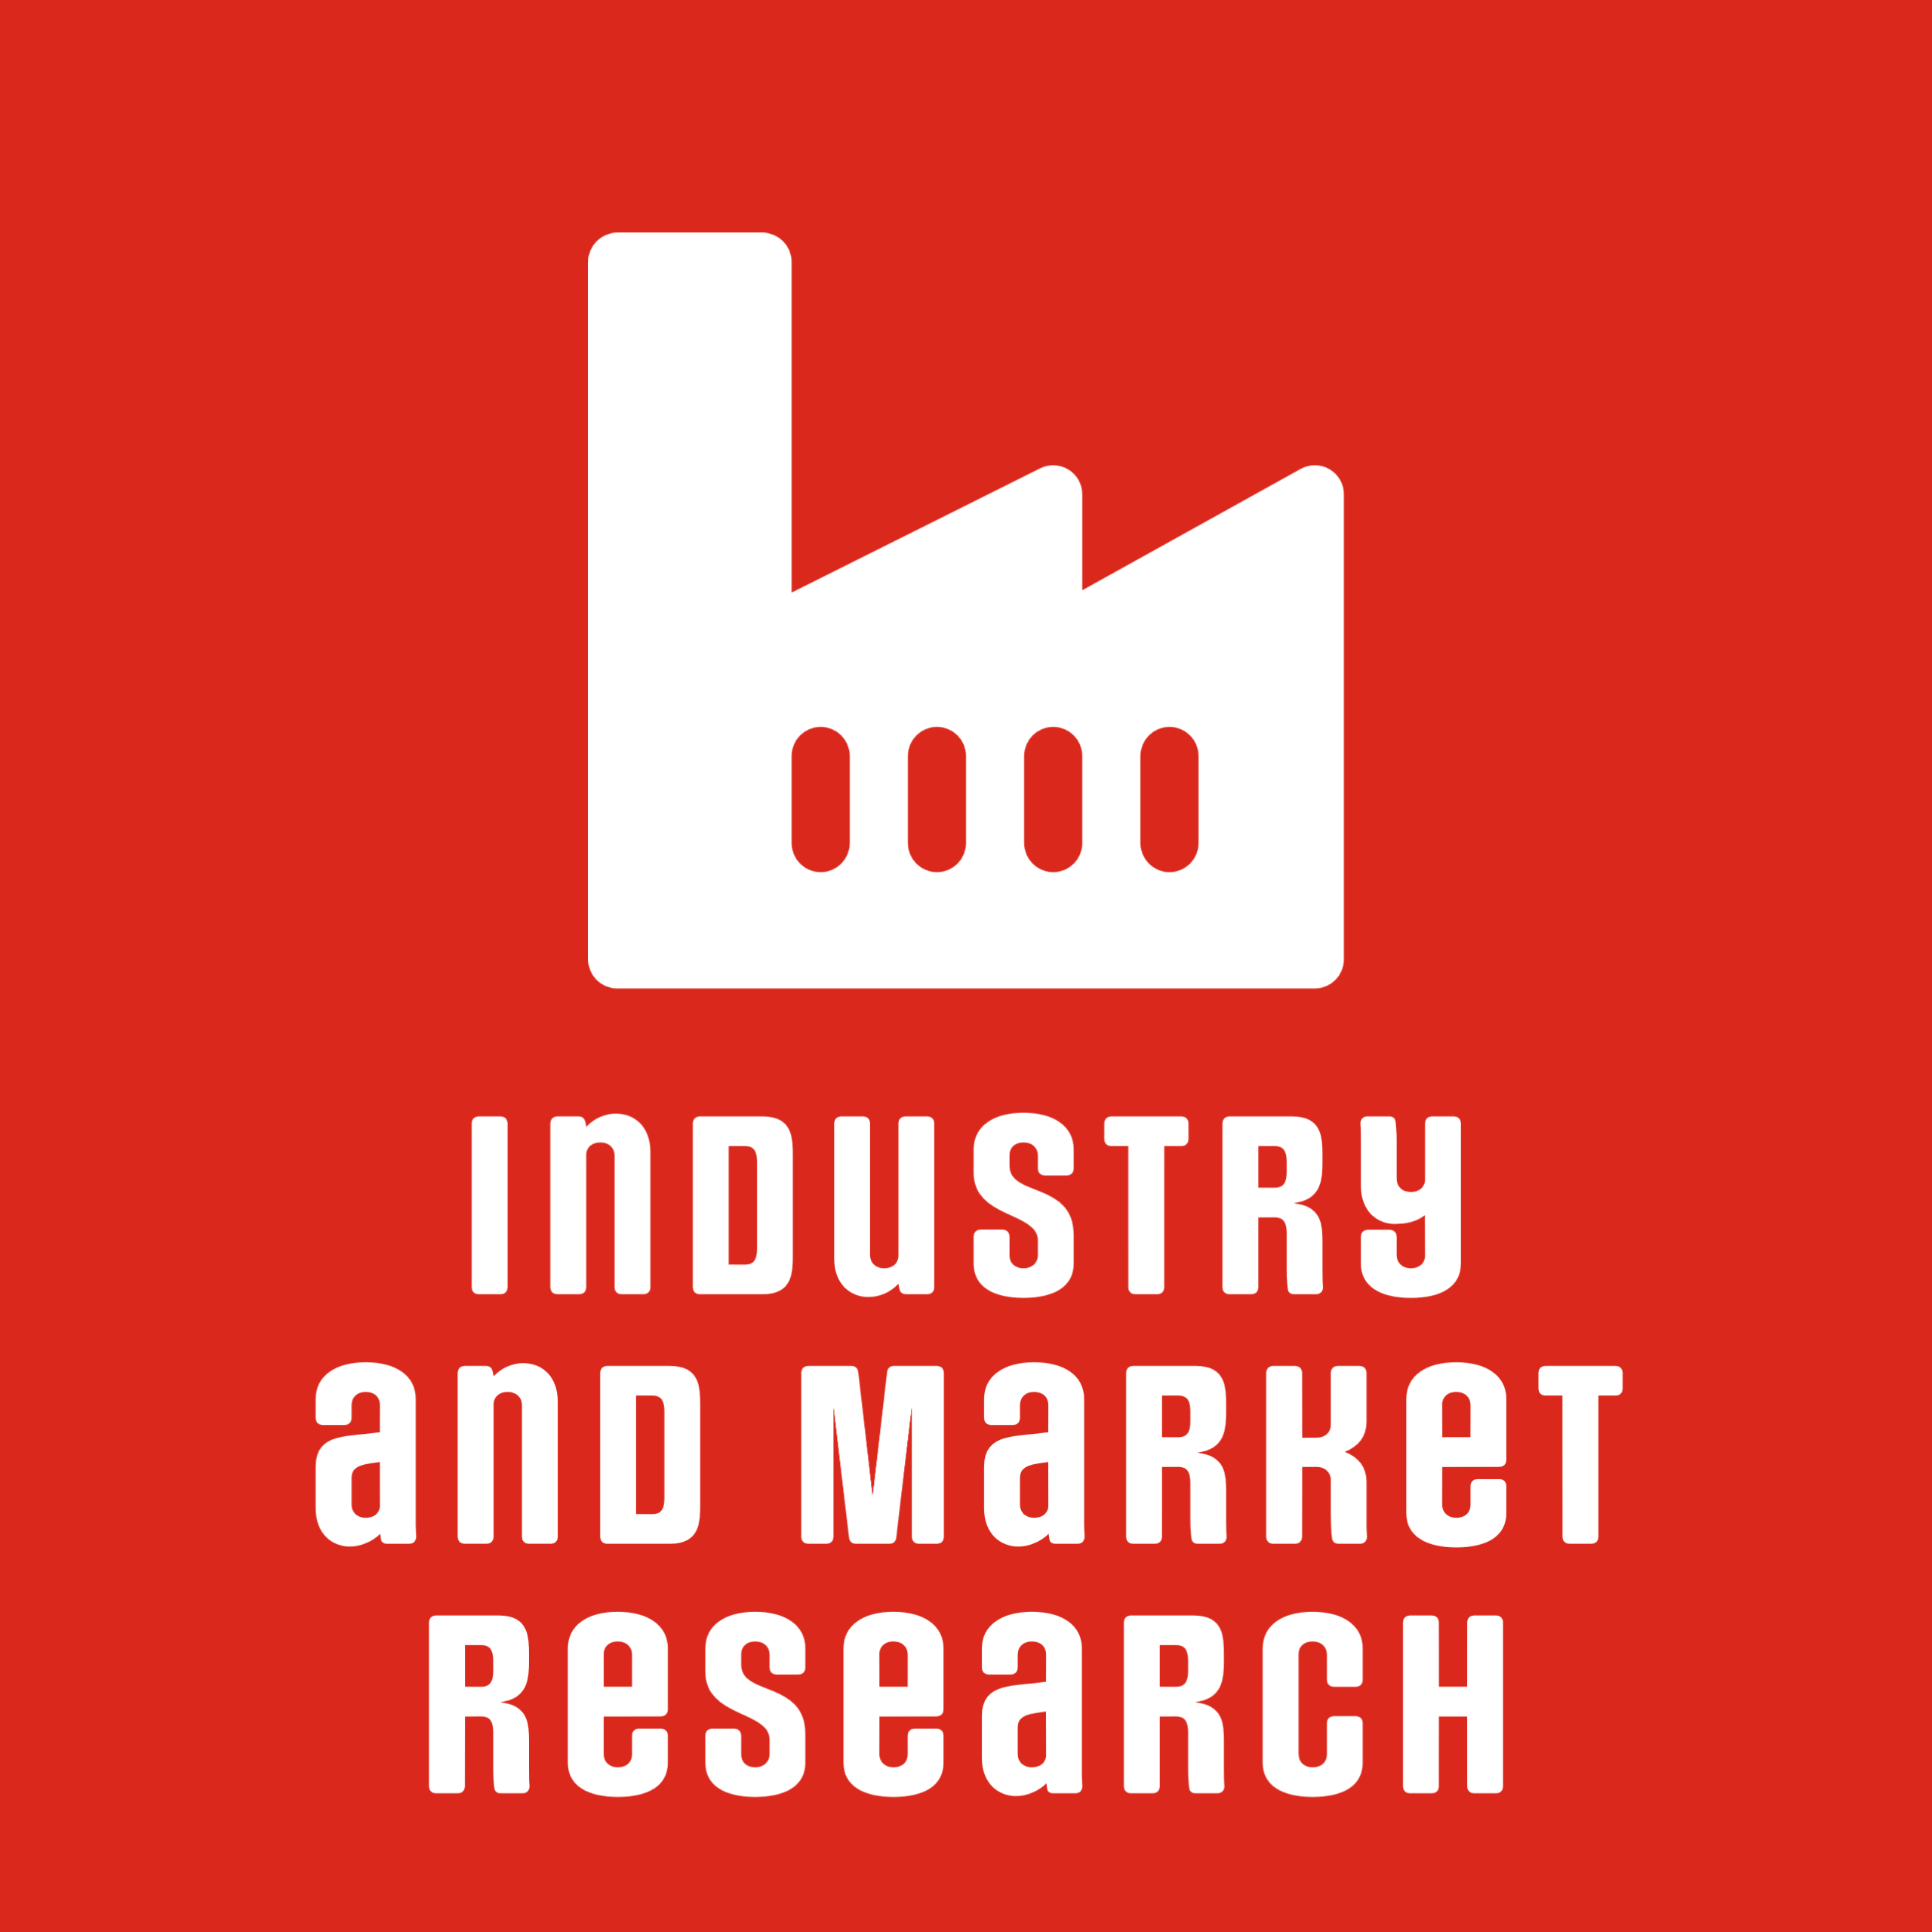 Industry and market research library resources